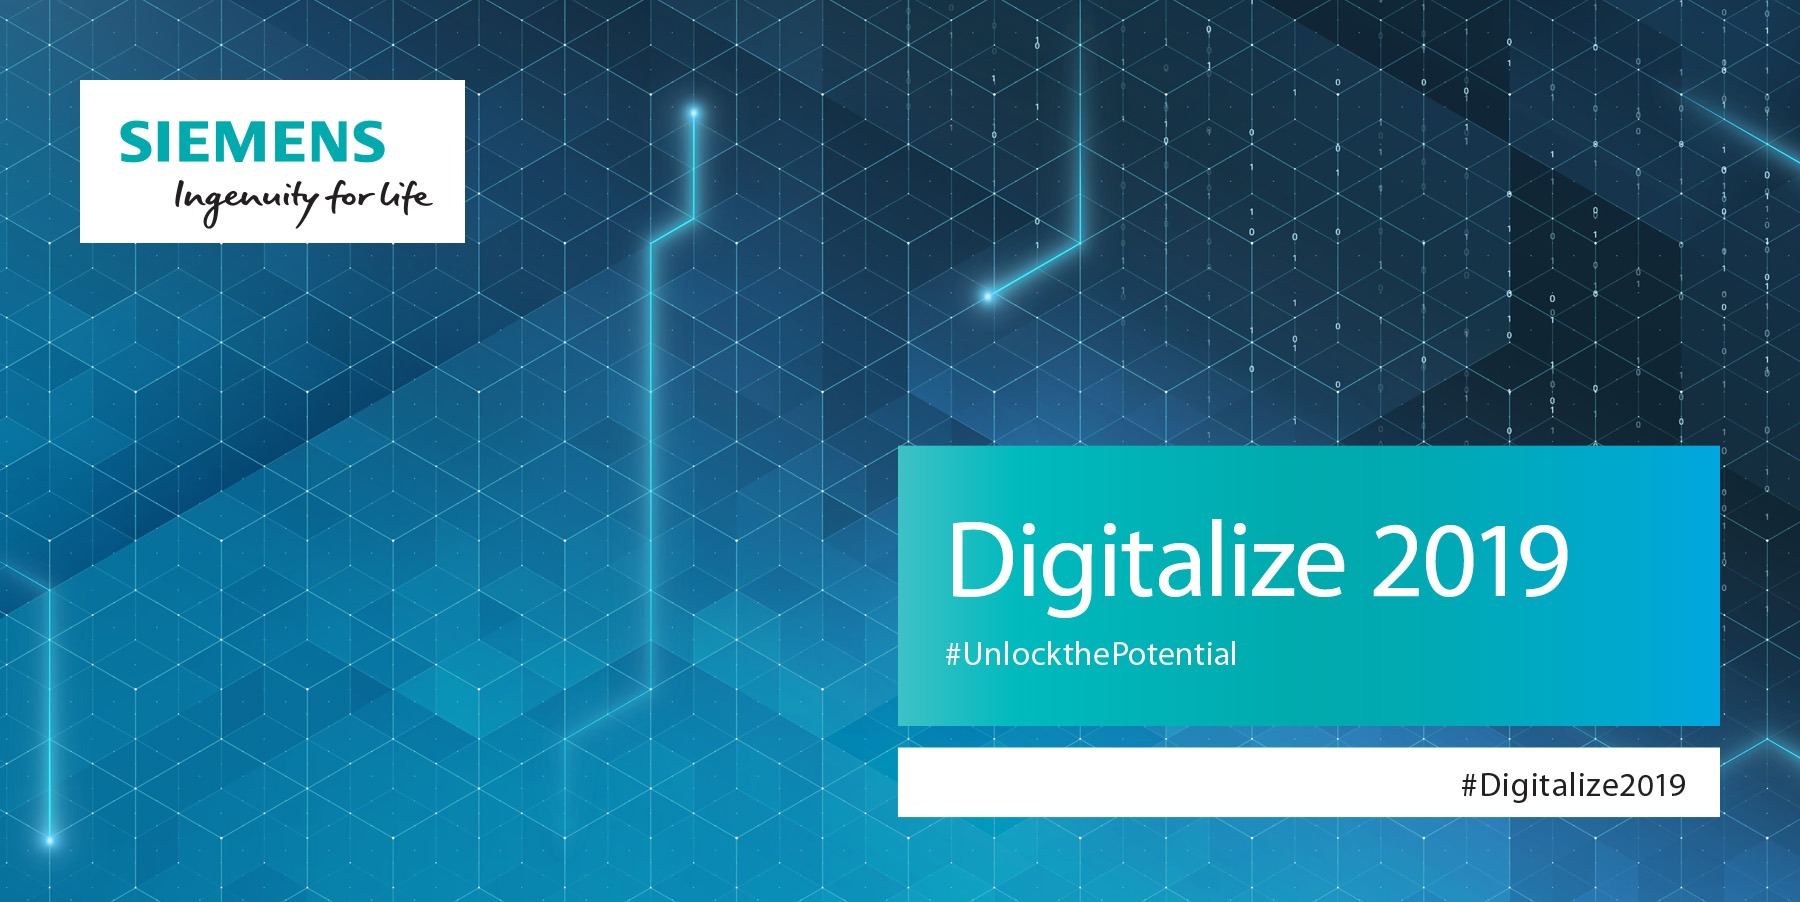 Siemens Digitalize 2019